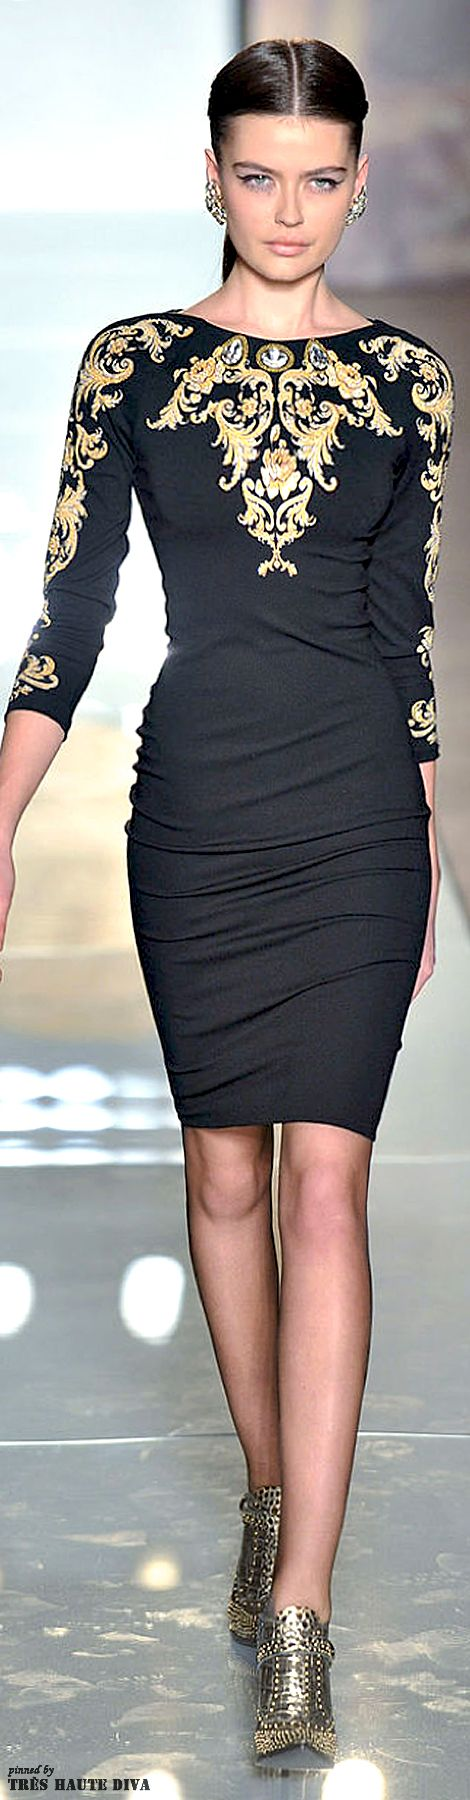 ~Roccobarocco    The fashion House of Beccaria   Lauxury fashion that captures her style and expresses her elegant sexy attitude   the little black cocktail dress   pretty sexy woman in black   #thejewelryhut